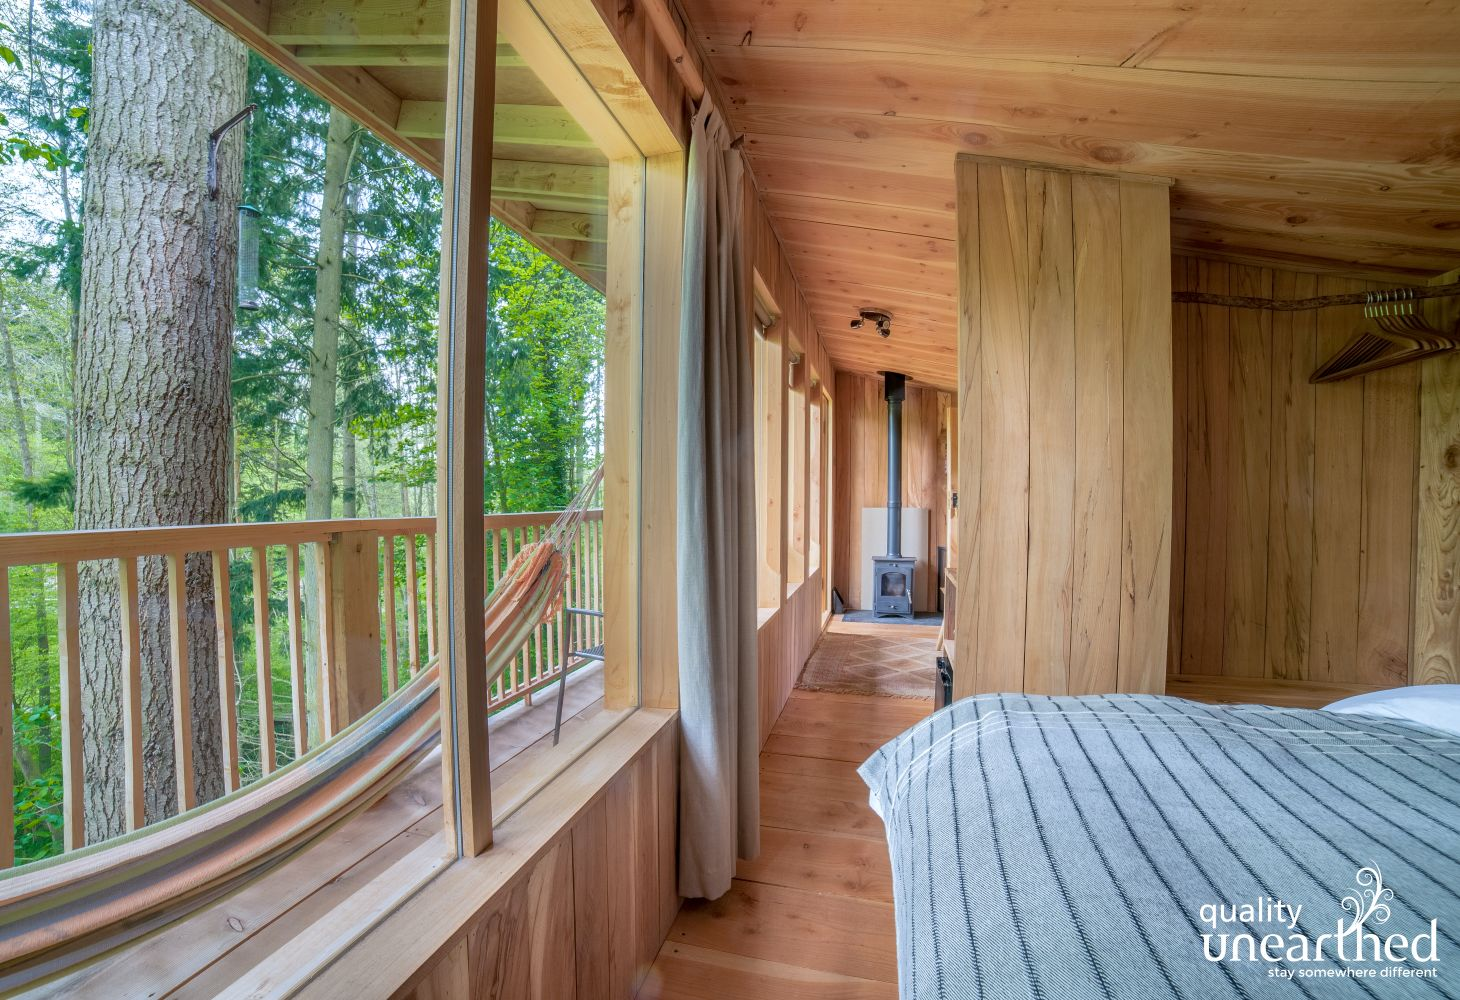 The double bed in the wooden cabin has amazing views across the welsh woodland